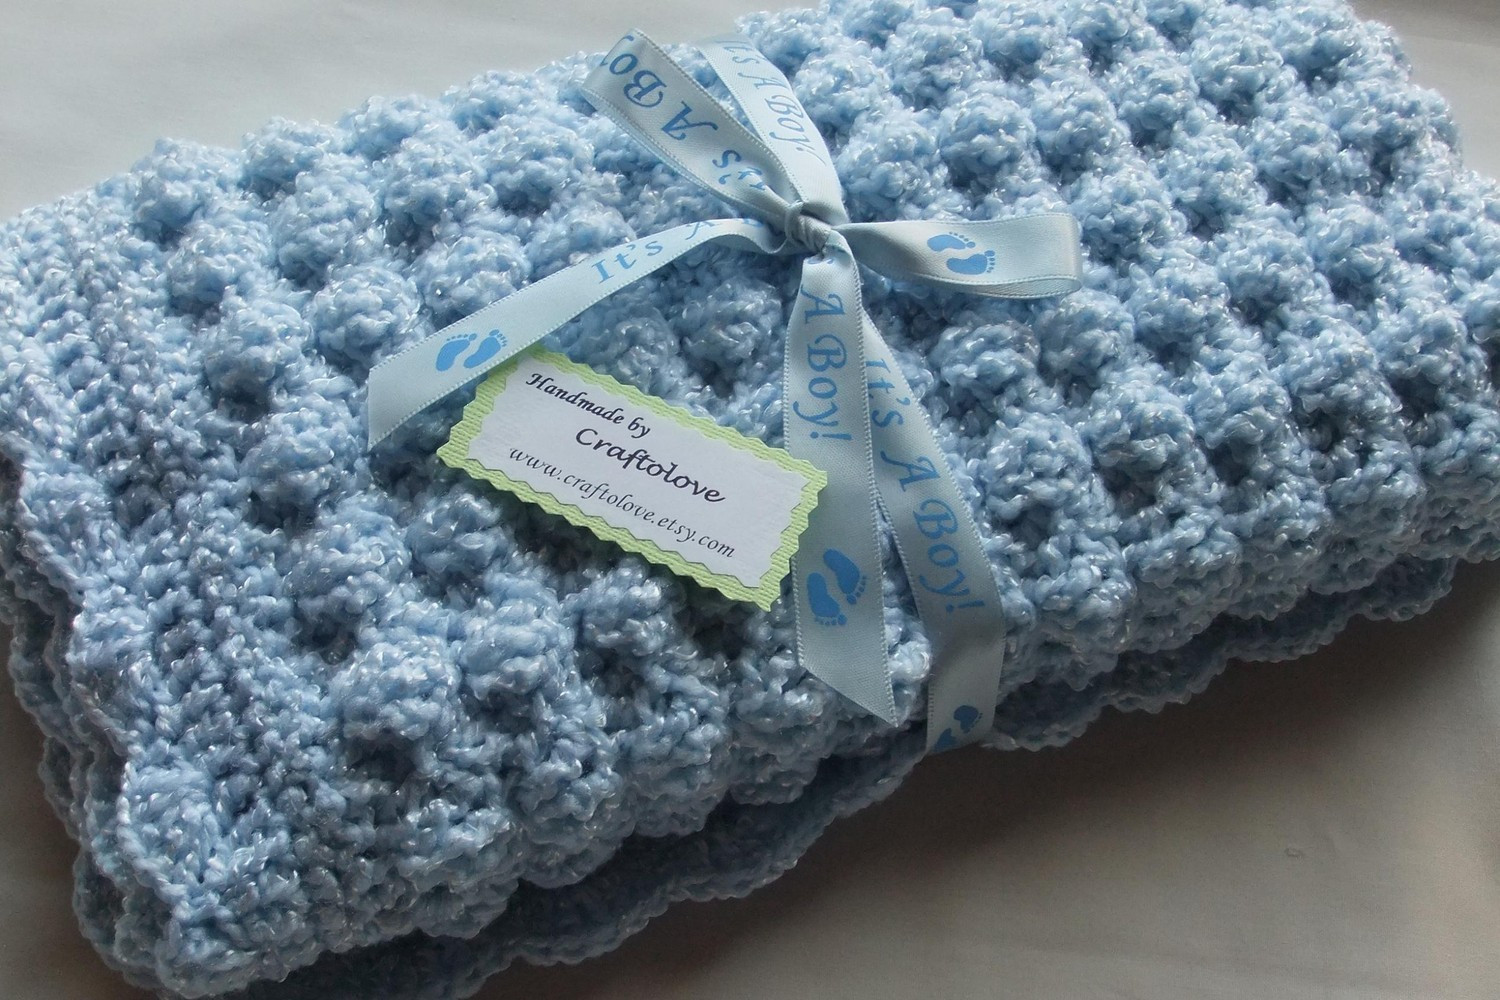 Baby Boy Crochet Blanket Patterns Beautiful Baby Boy Crochet Blanket Patterns Free Of Baby Boy Crochet Blanket Patterns Luxury Baby Blanket with Cabled Border Crochet Pattern